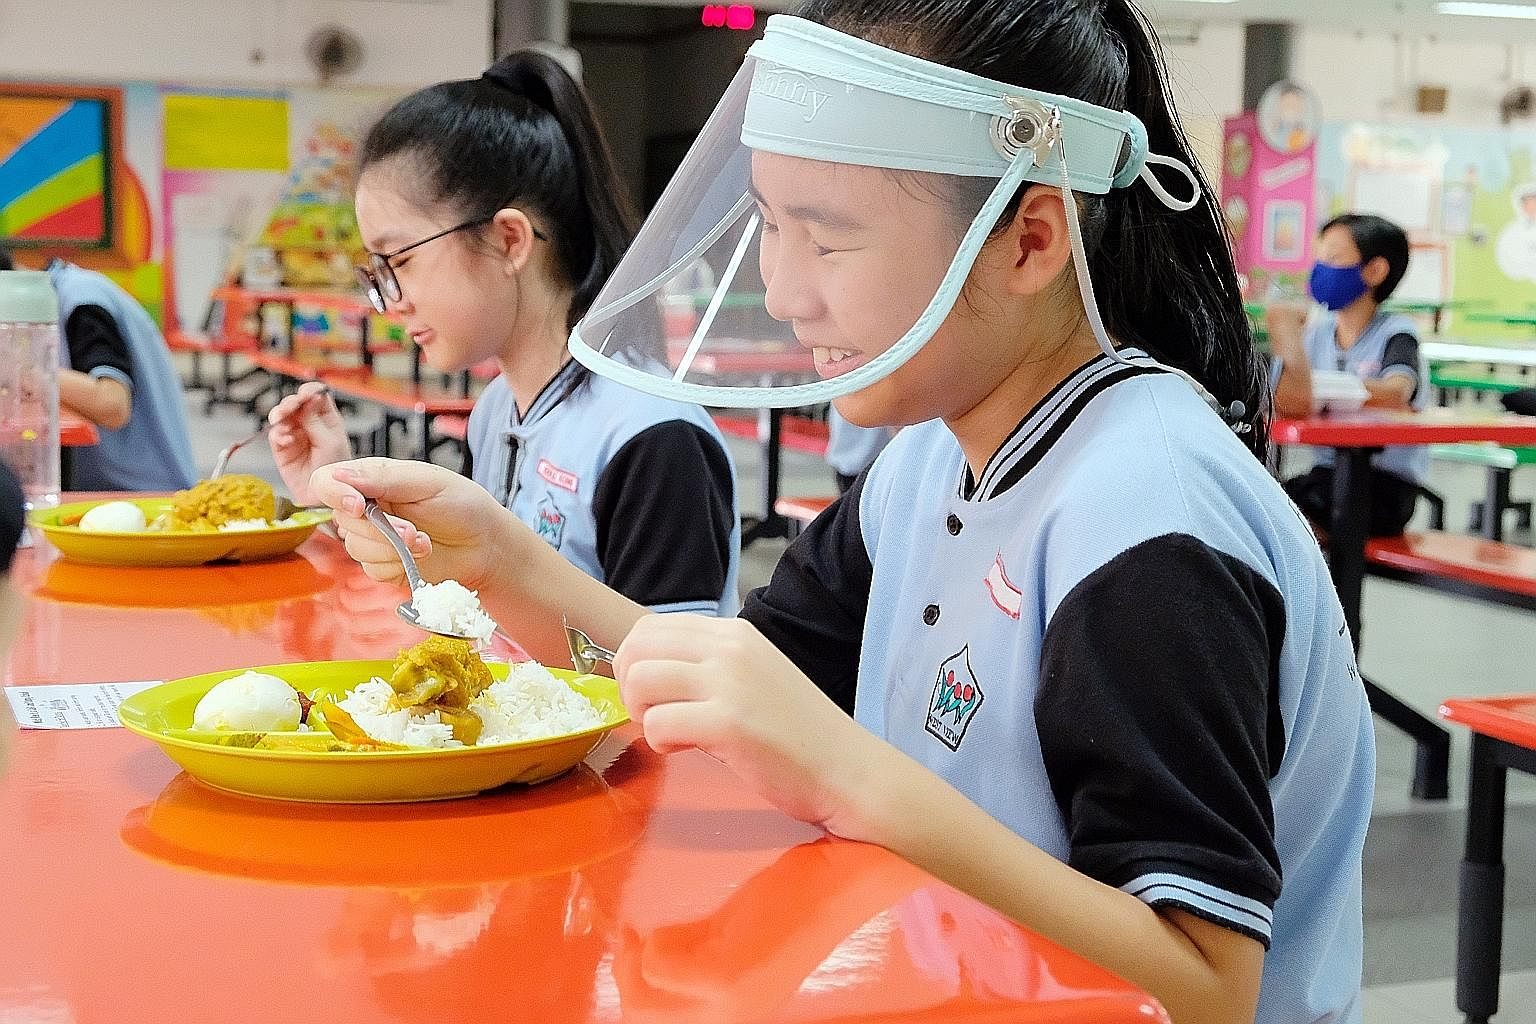 Apart from face masks, plastic face shields can be worn by st